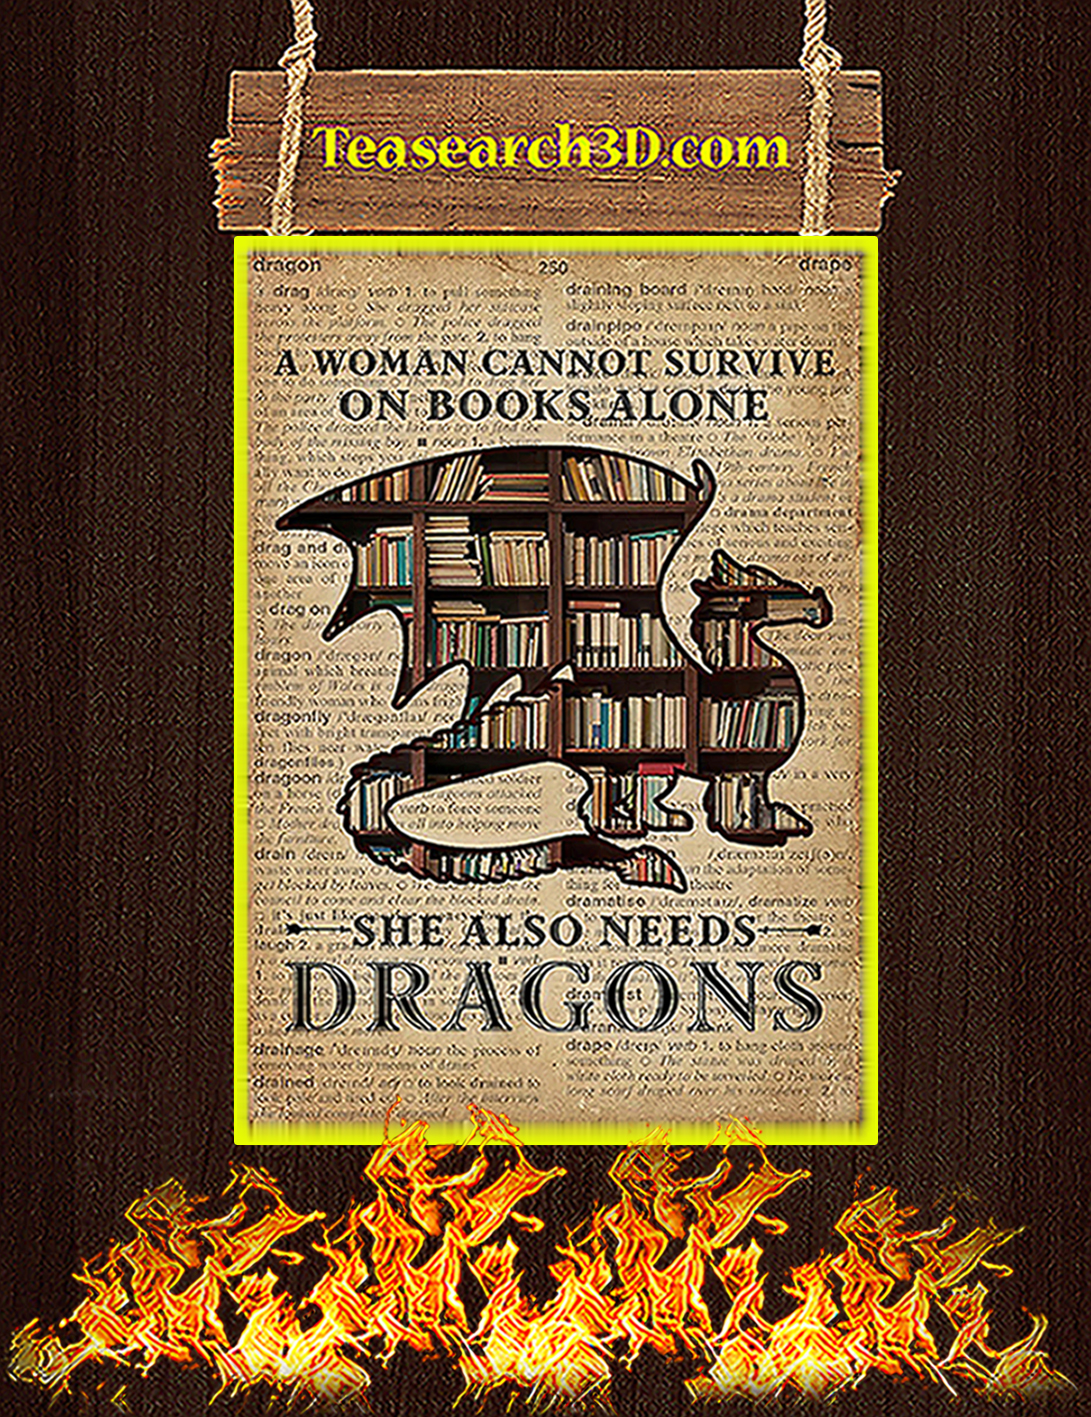 A woman cannot survive on books alone she also needs dragons poster A2